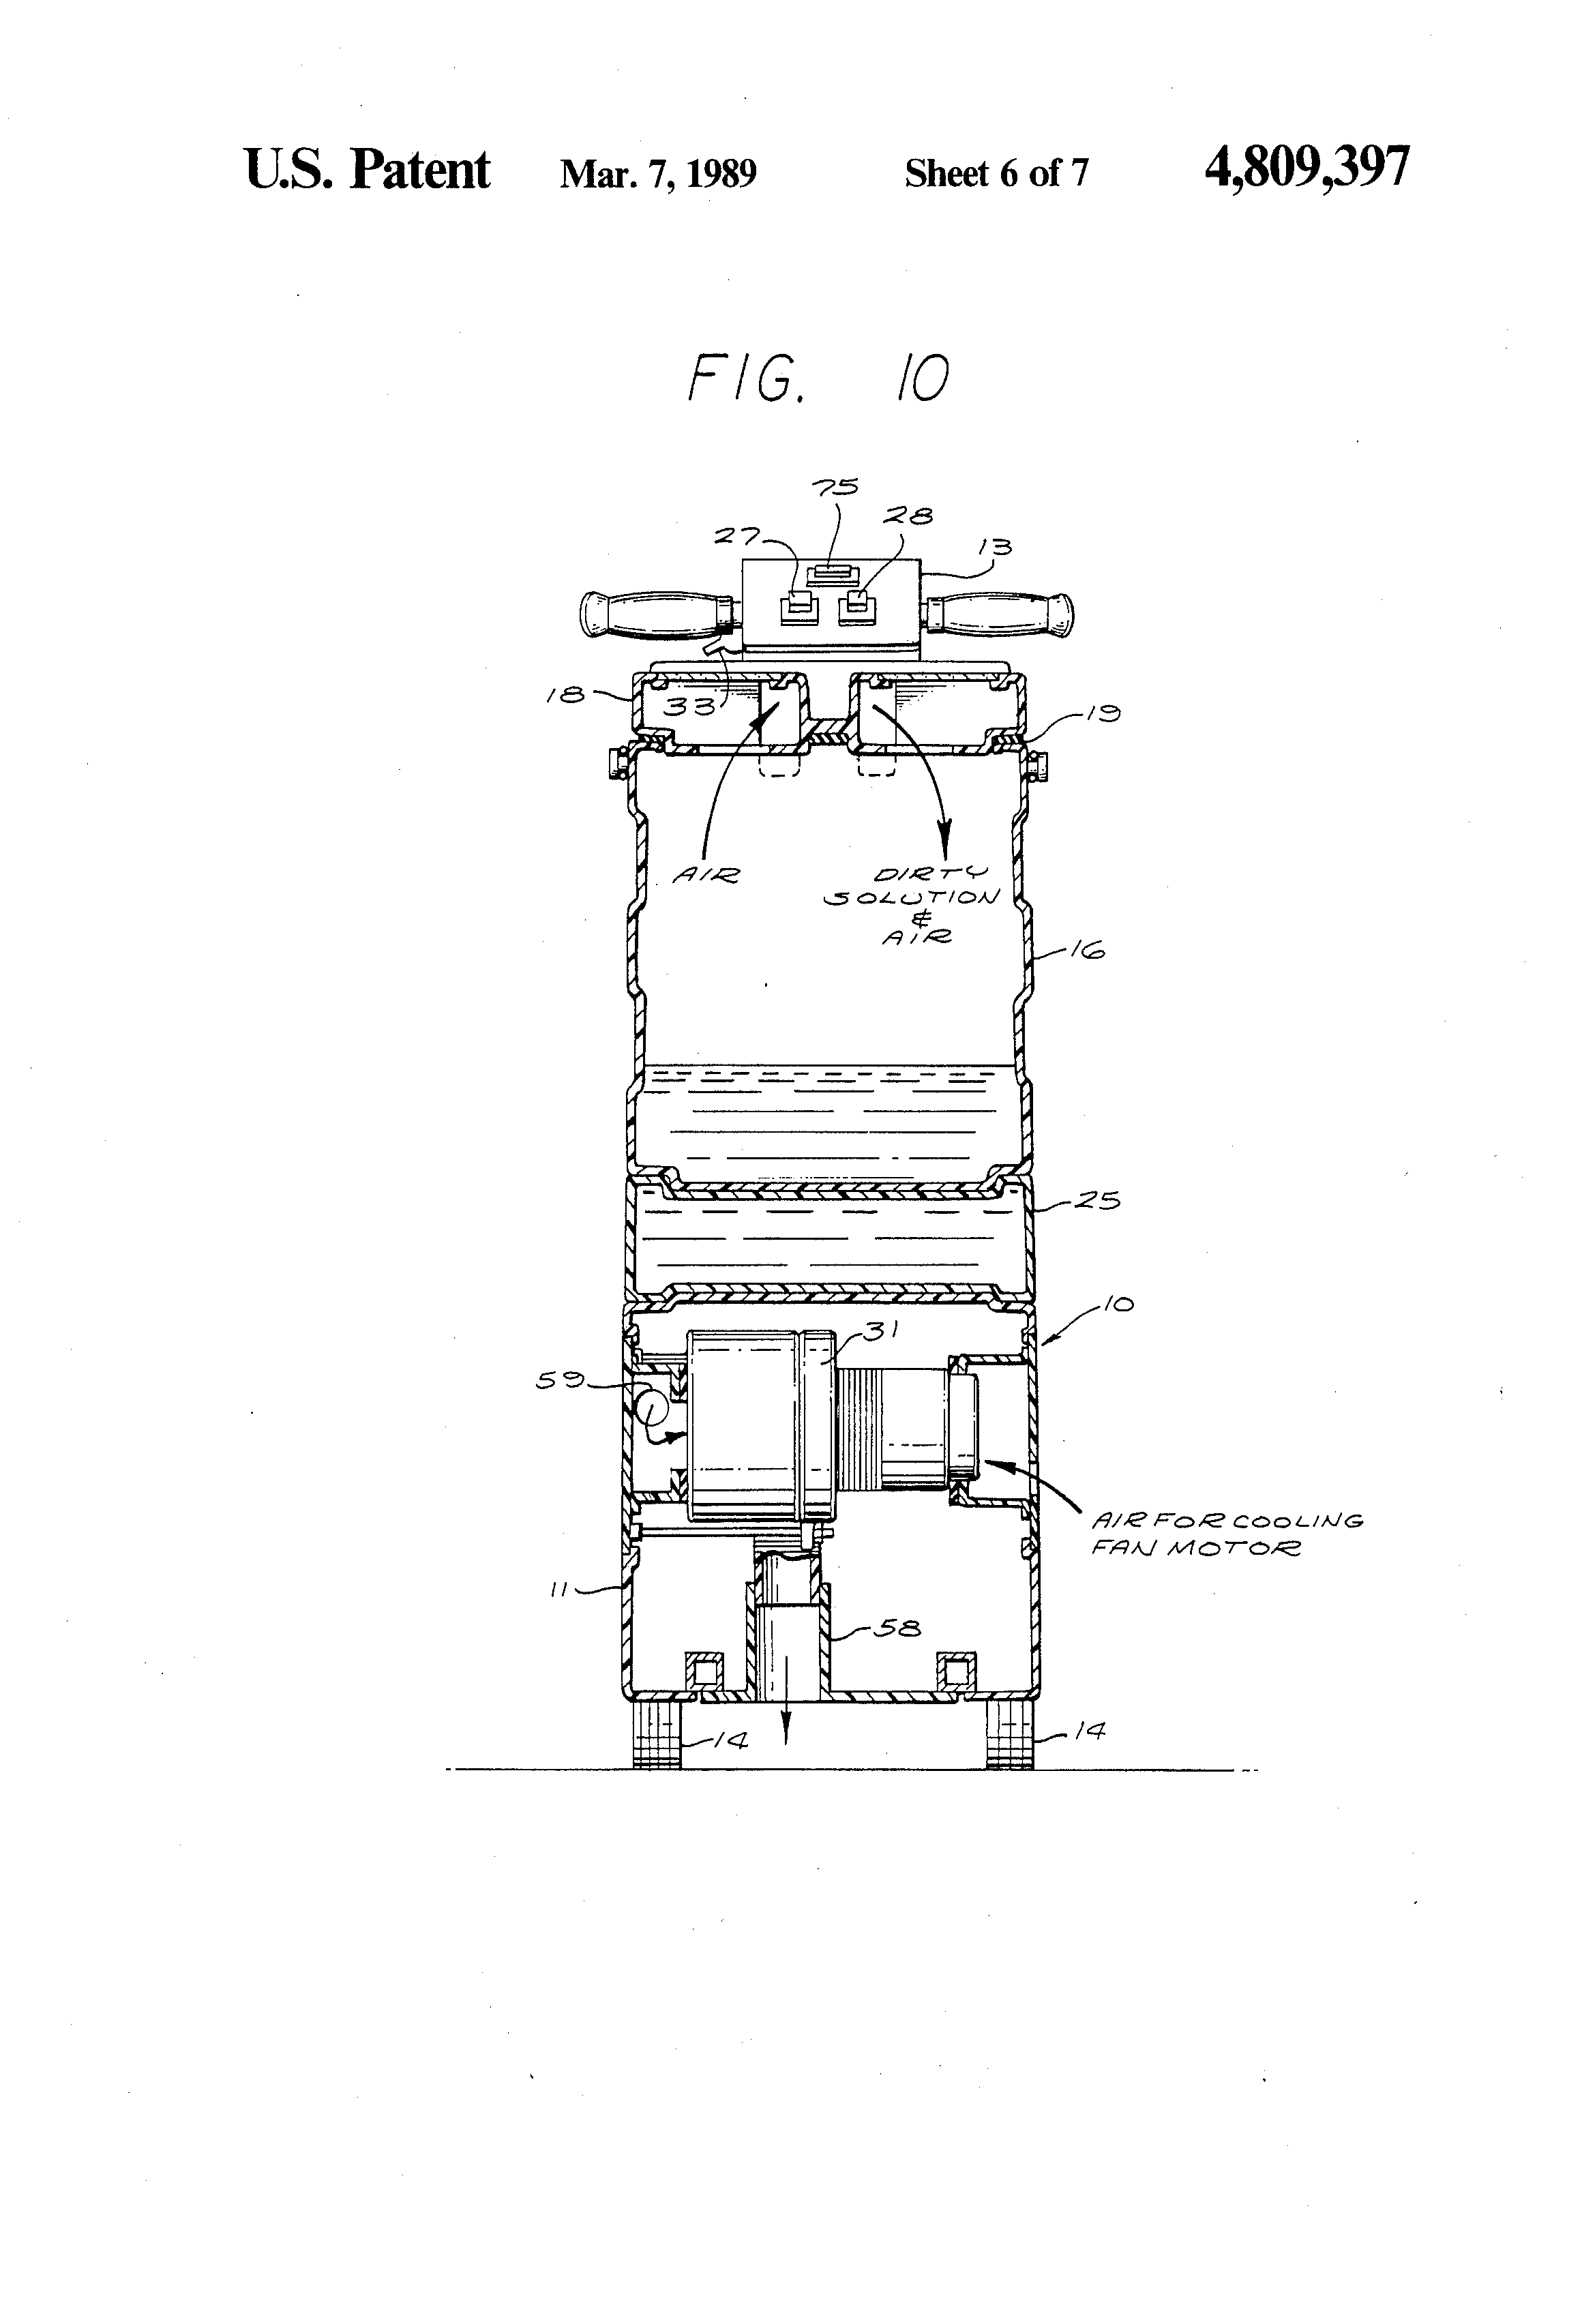 Attractive Patent Drawing